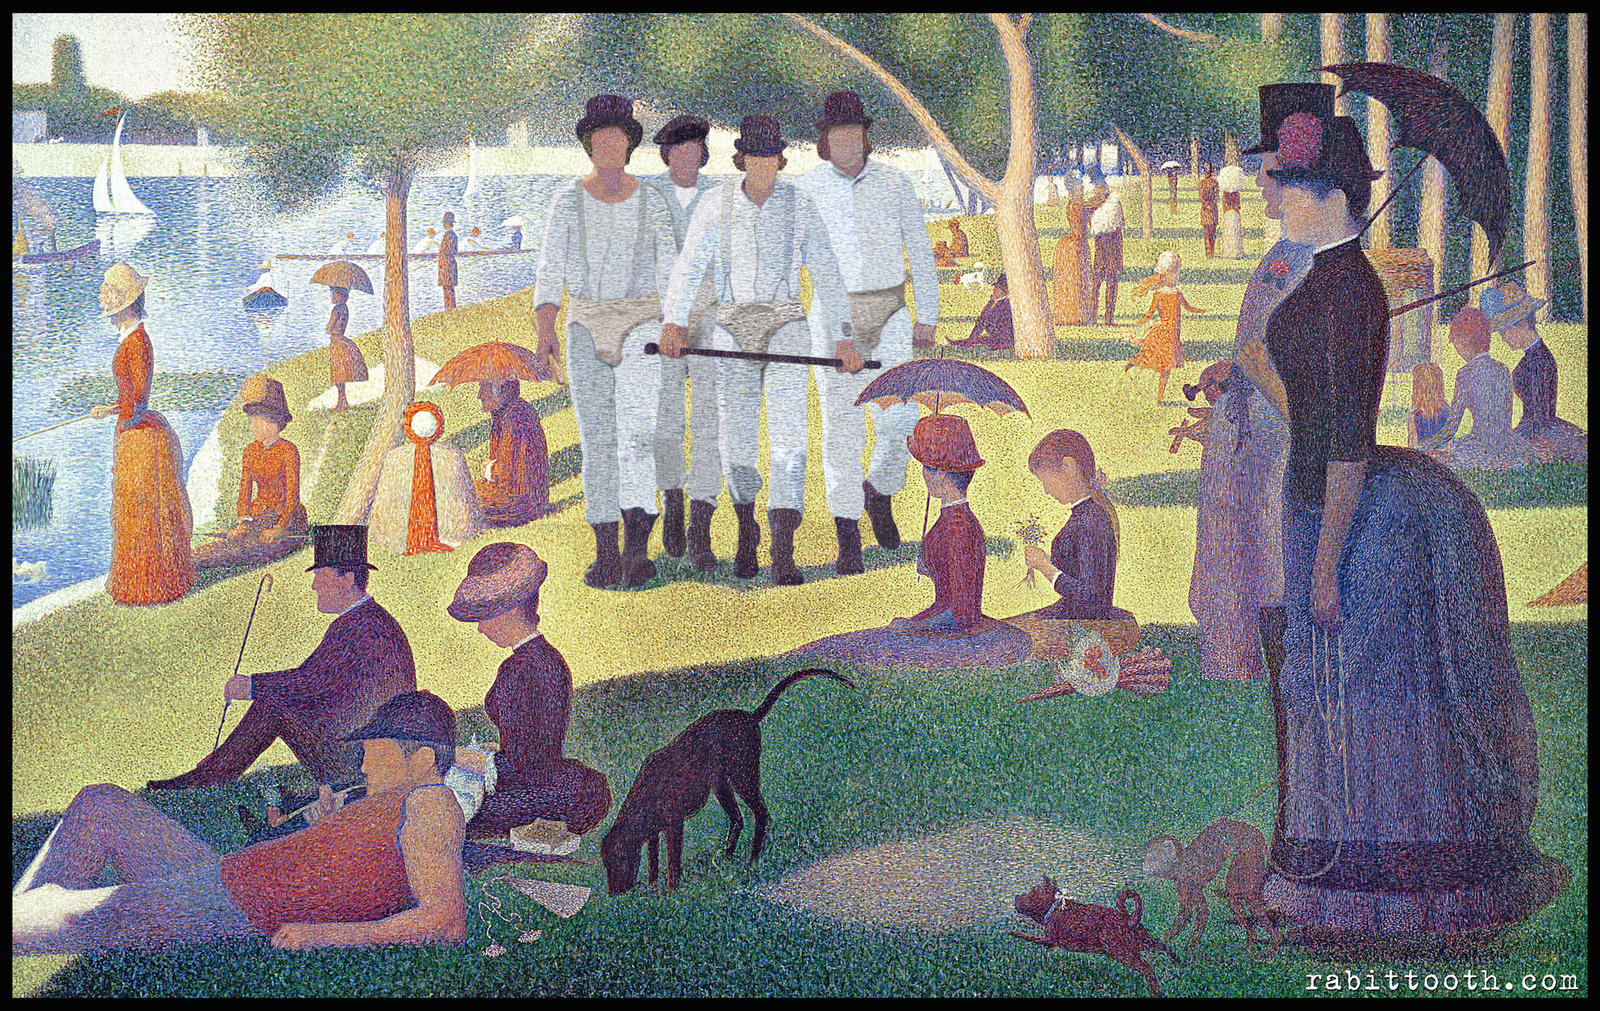 A Clockwork Sunday ( Seurat / Clockwork Orange ) by Rabittooth